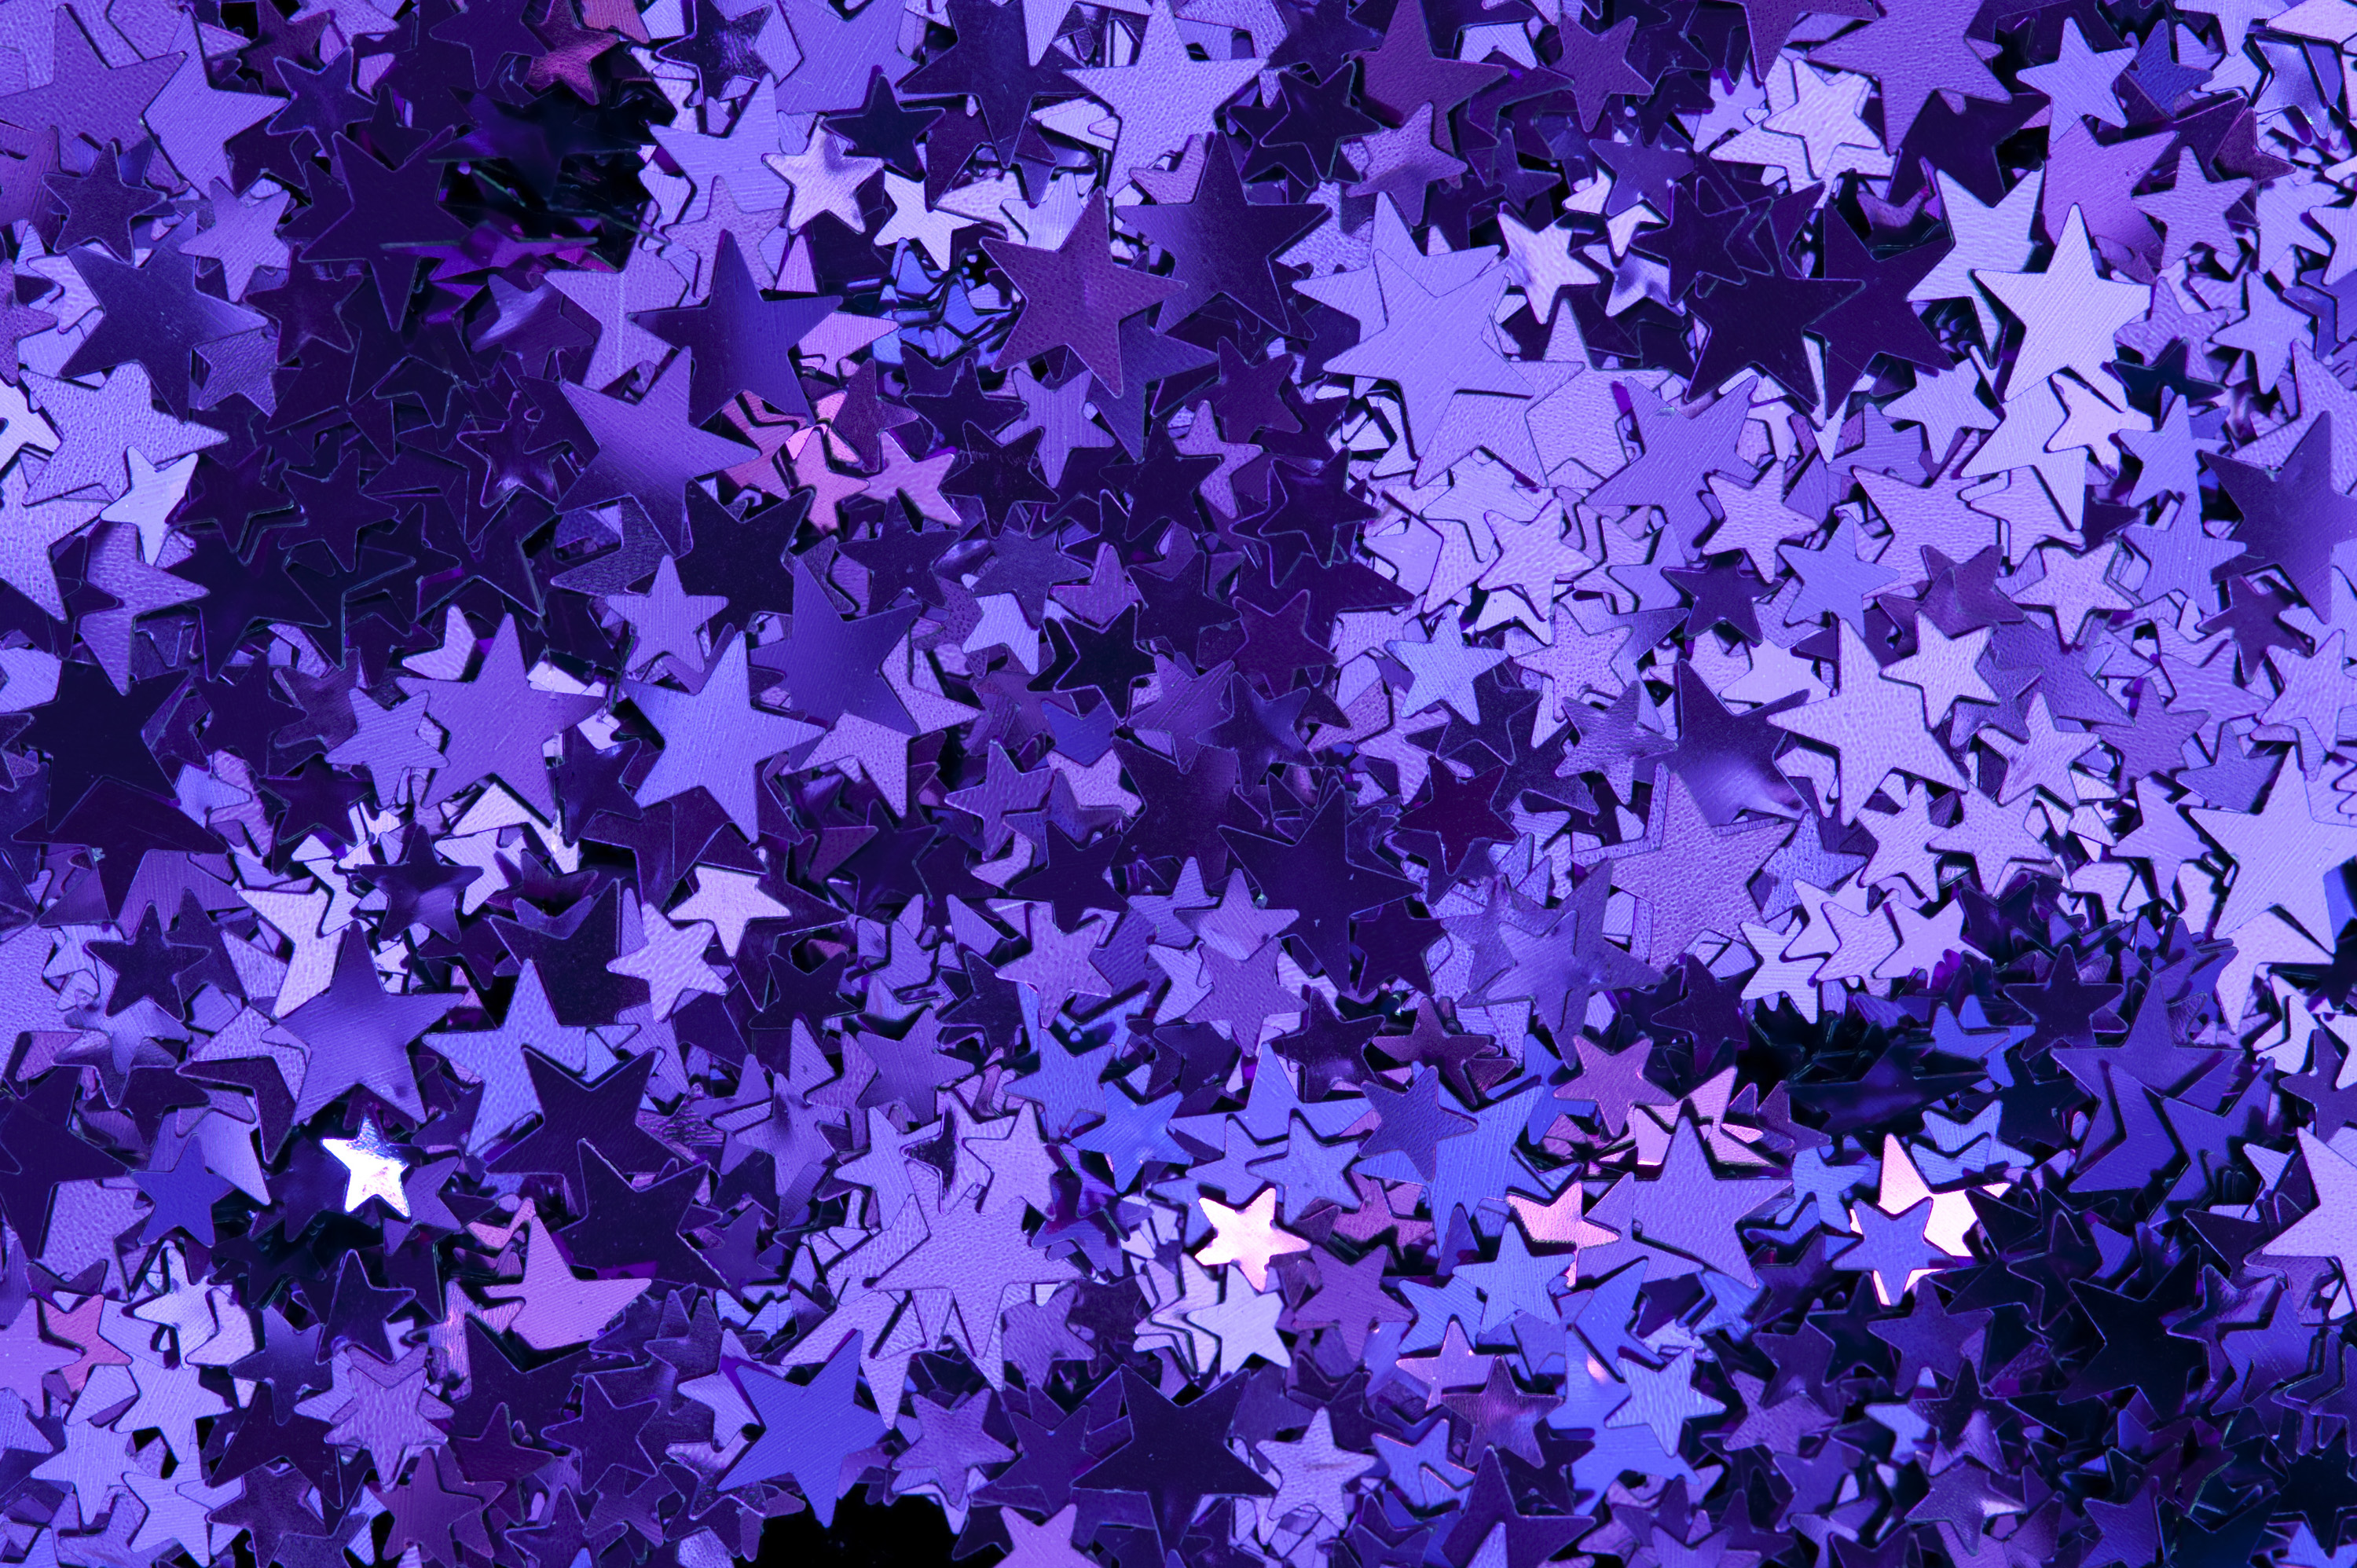 Purple star glitter 2725 stockarch free stock photos accept license and download image thecheapjerseys Gallery